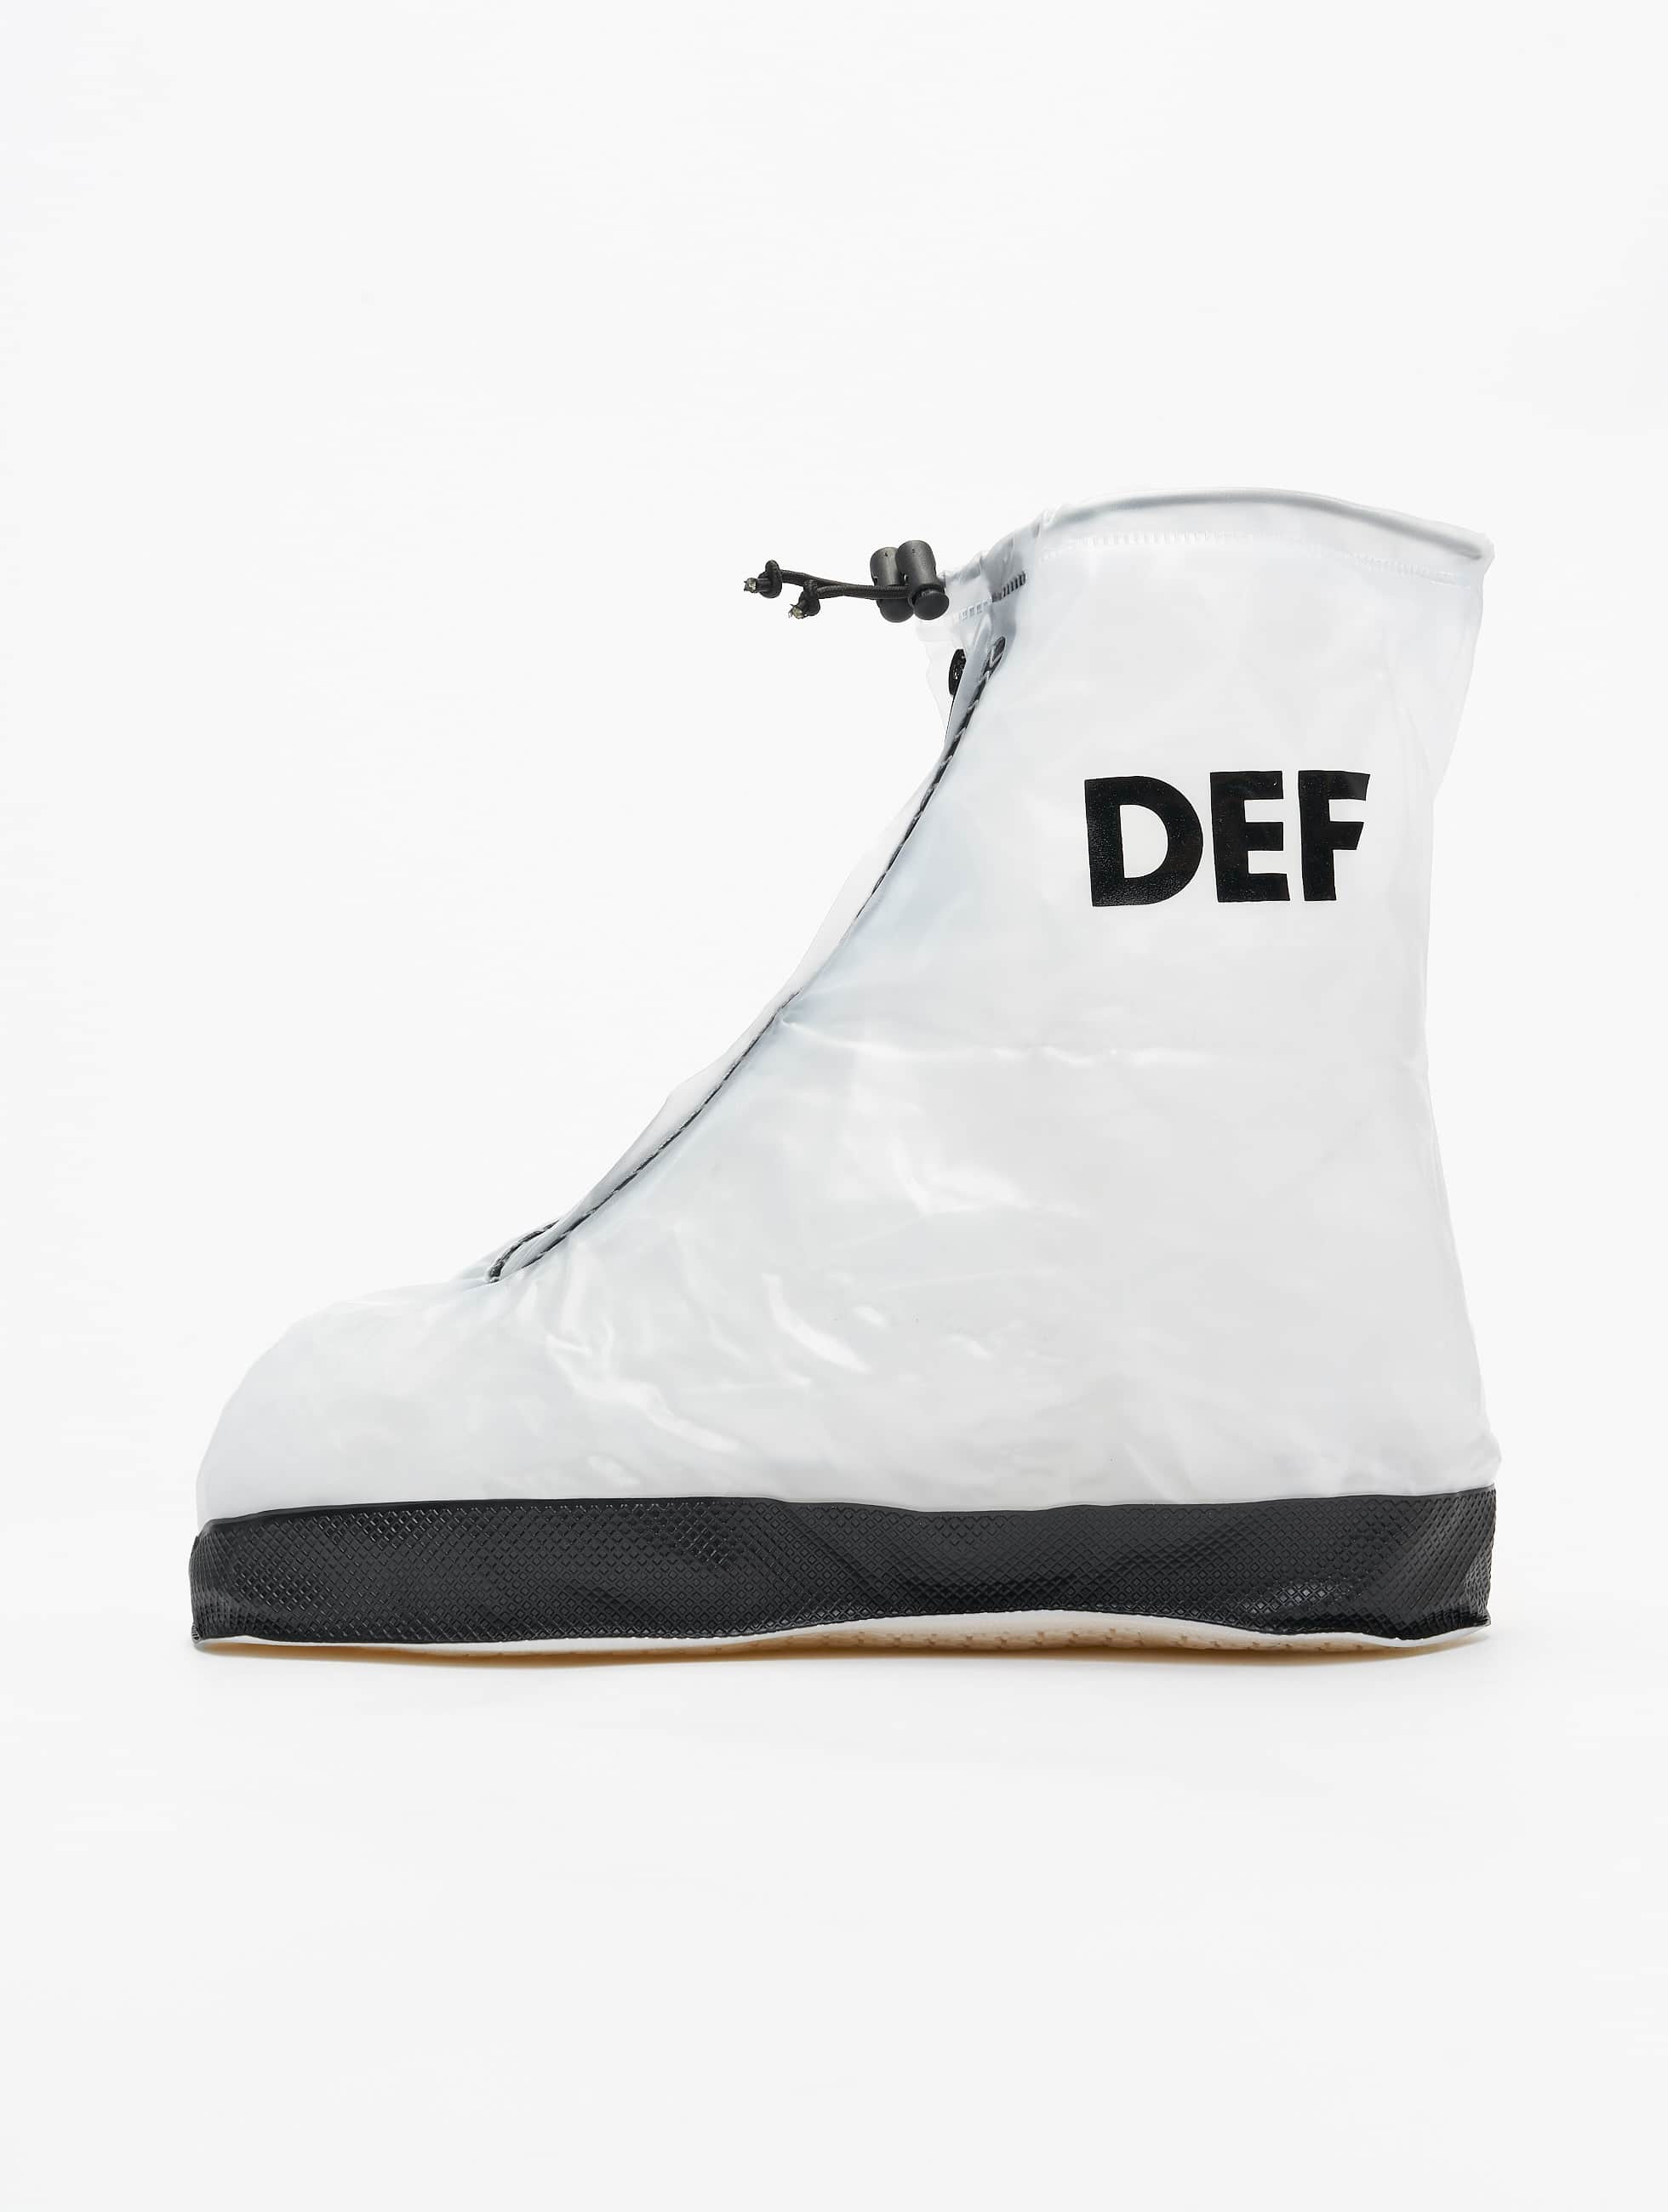 DEF / Shoe Care Rain in black XL (41-42)